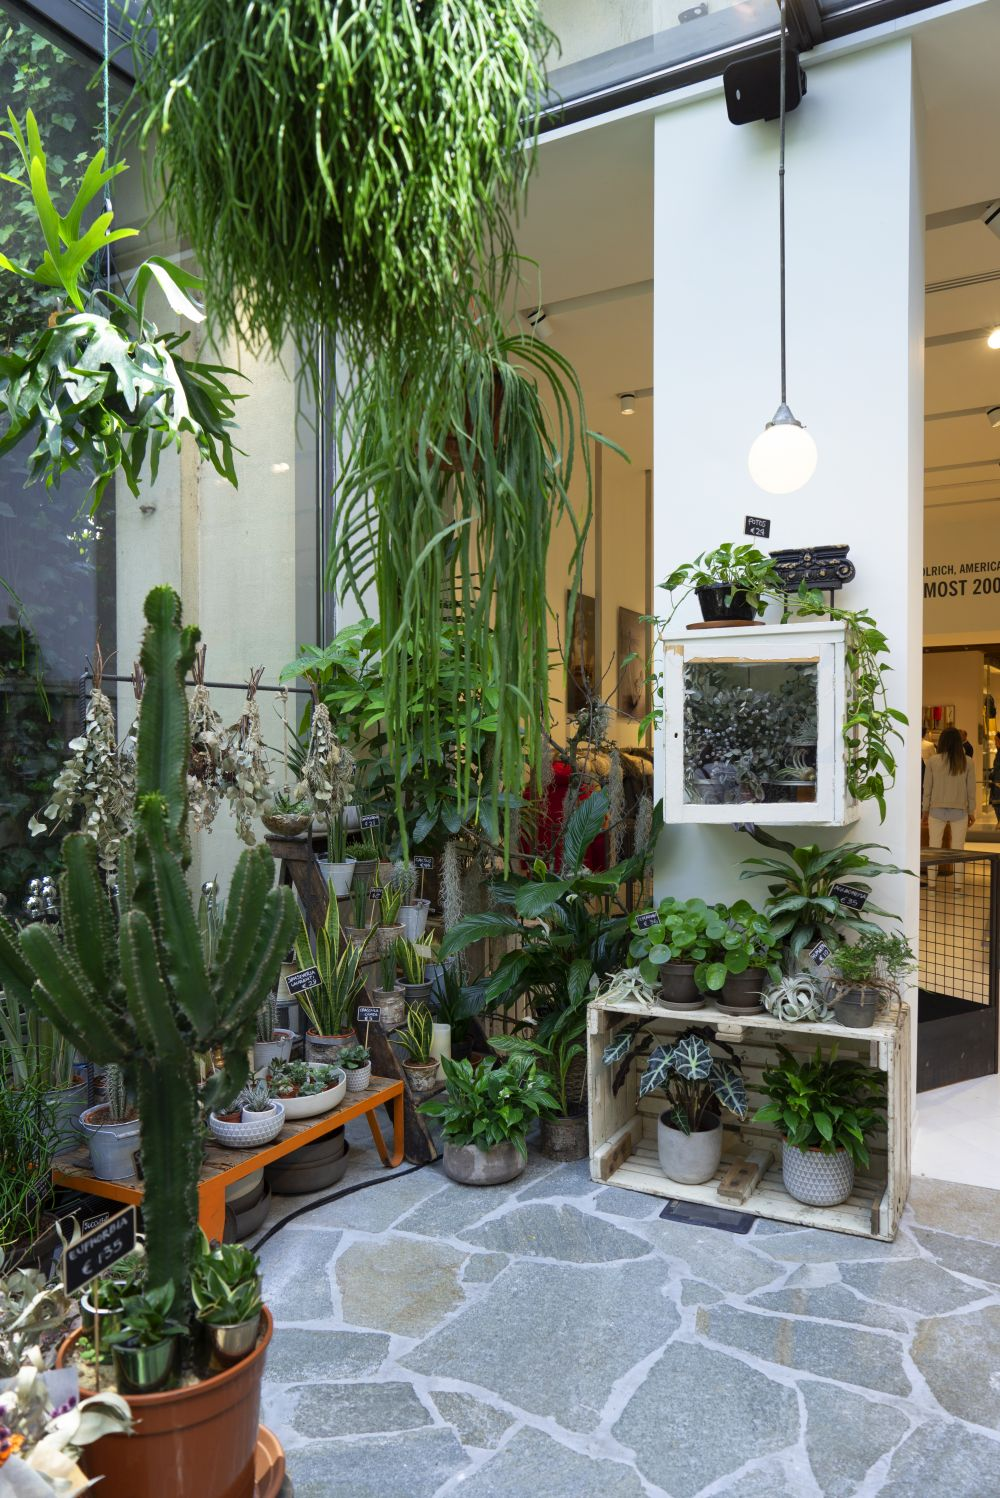 Urban Jungle Bloggers - Green Fingers plant shop at Woolrich in Milan #urbanjunglebloggers